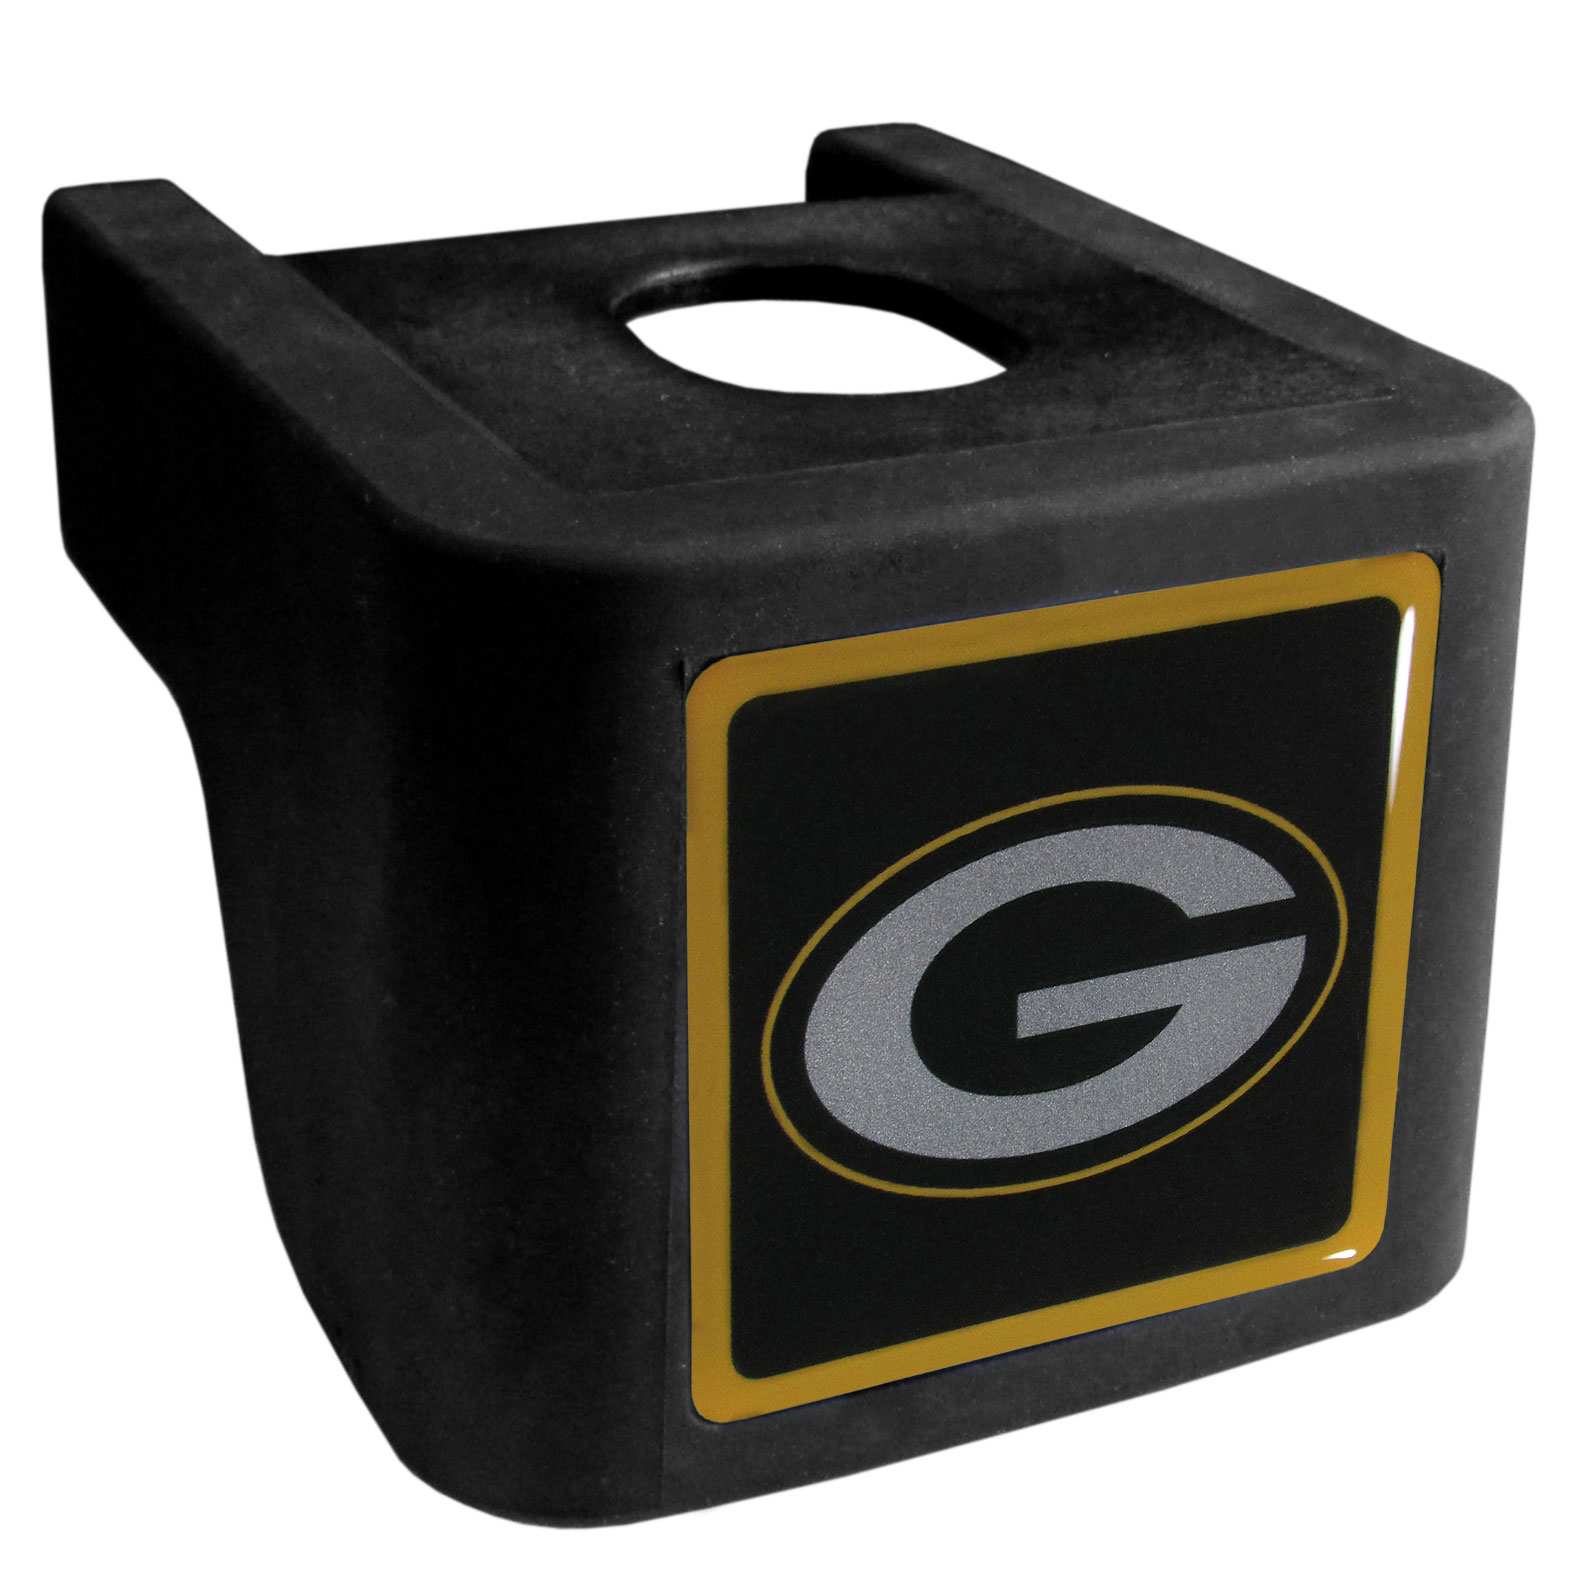 Green Bay Packers Shin Shield Hitch Cover - This unique hitch cover features a large Green Bay Packers logo. If you have ever hooked up a trailer or boat your have probably smashed your shins on the ball hitch a few times. This revolutionary shin shield hitch cover provides your much abused shins with the protection they deserve! The tough rubber hitch is rated to work with Class V hitch receivers hauling up to 17,000 gross trailer weight and 1,700 tongue weight allowing you to leave it on while hauling.